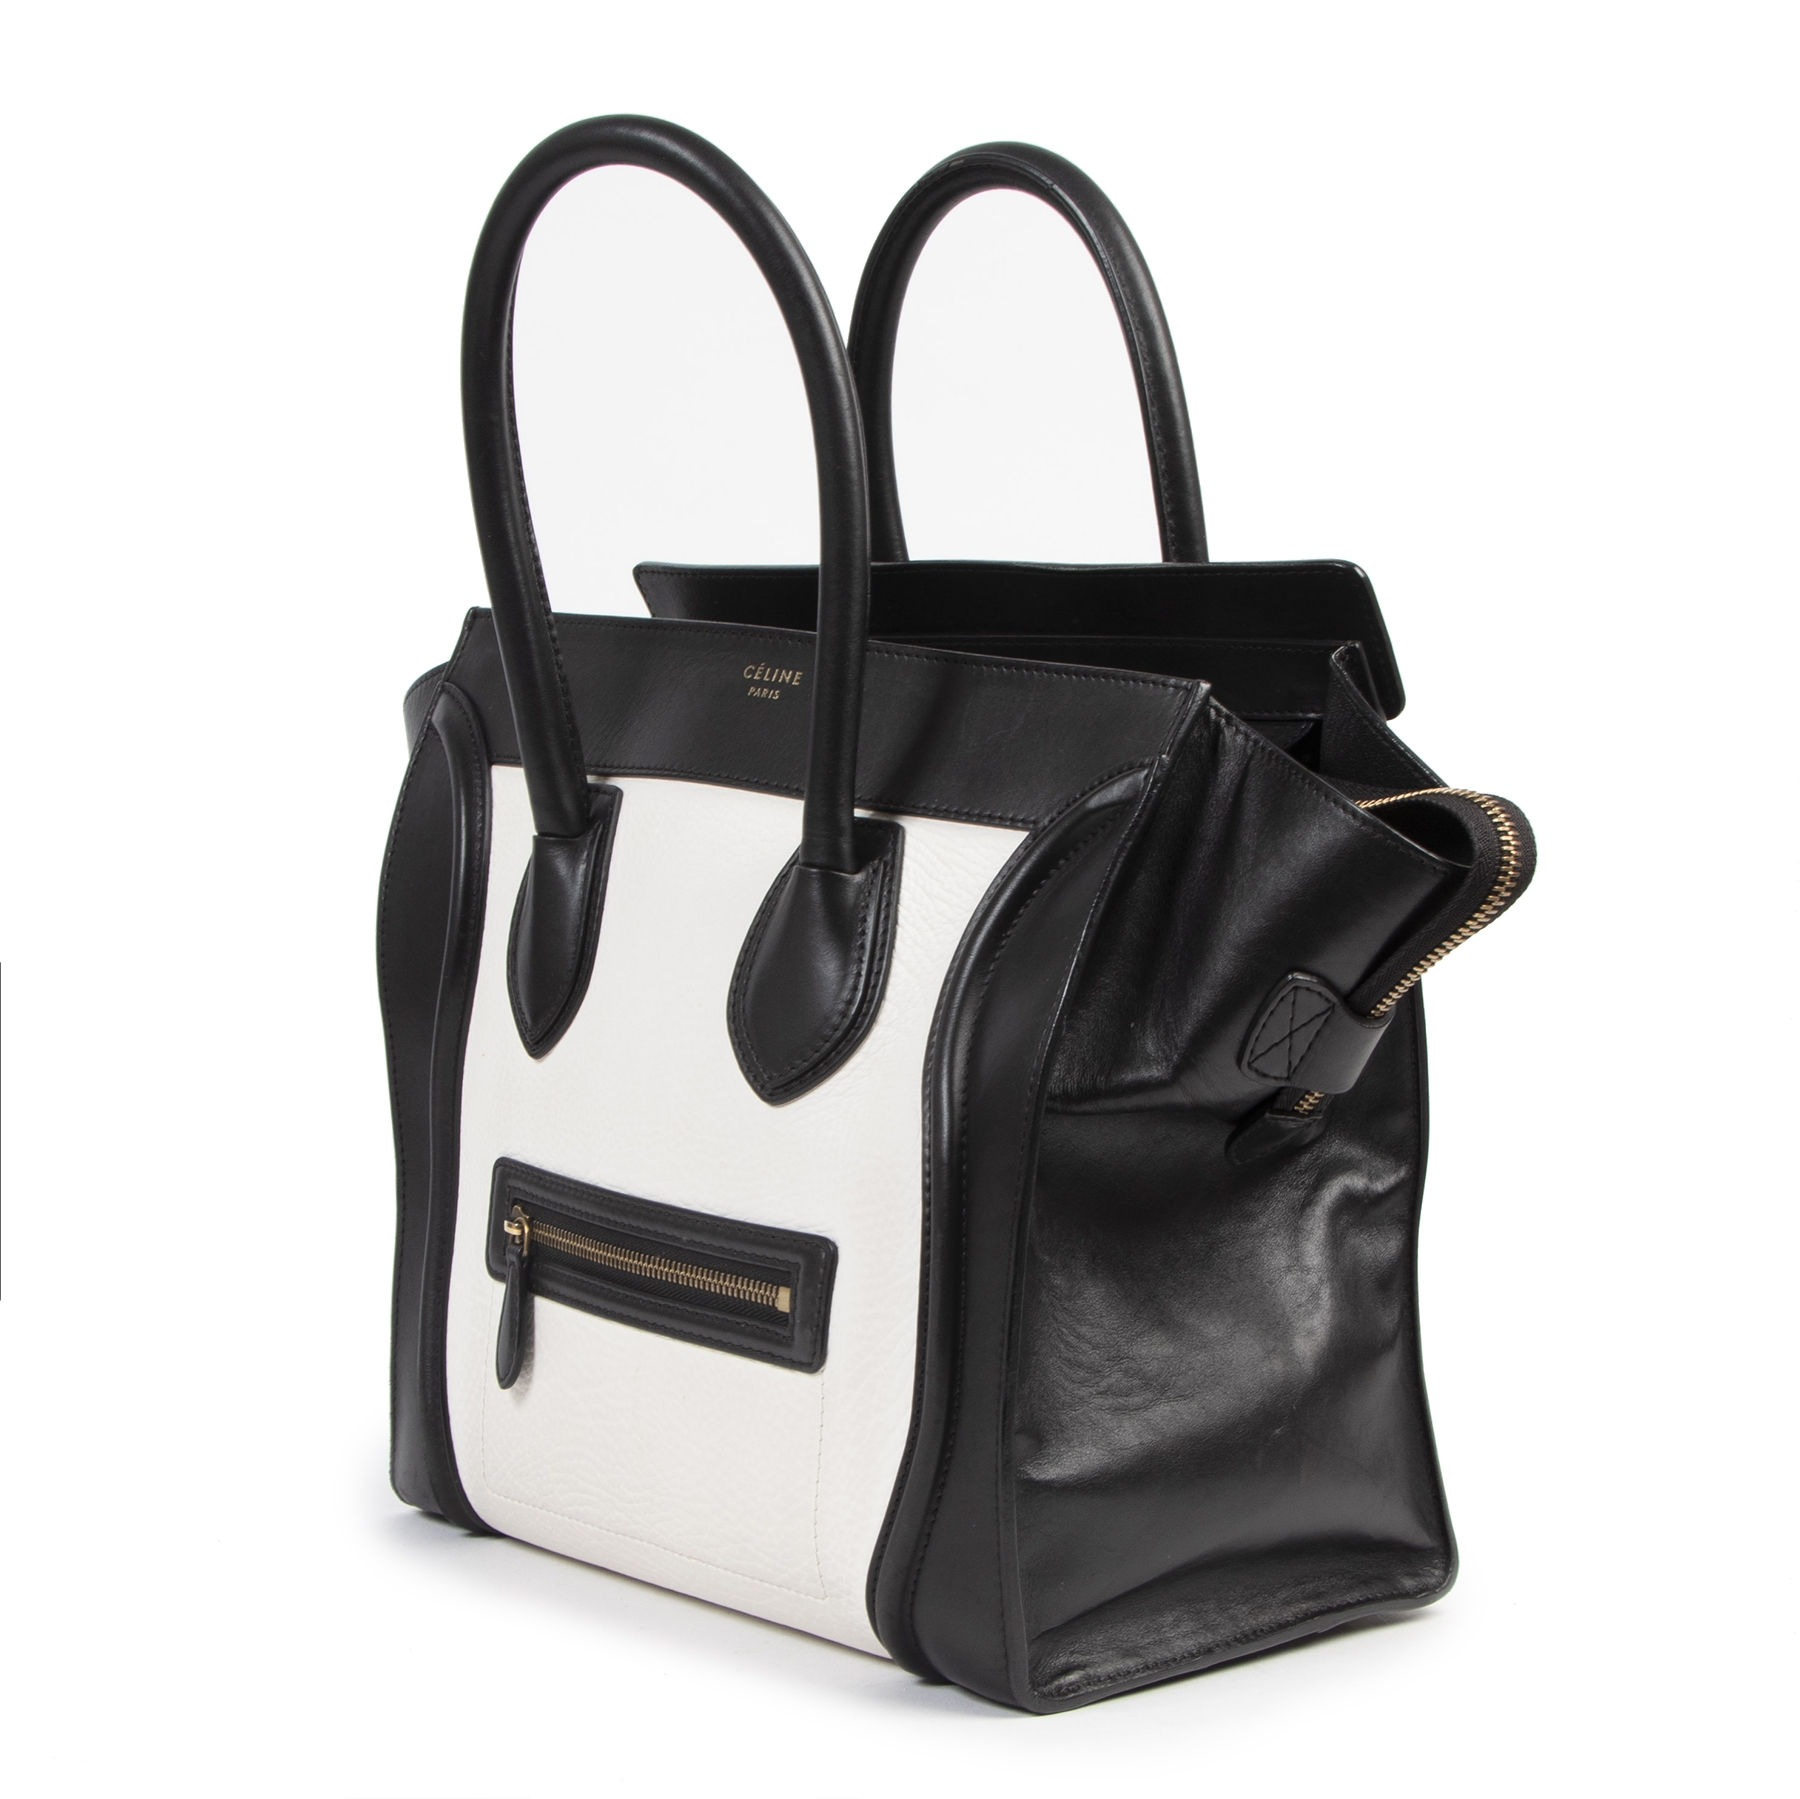 Authentic secondhand Céline Black & White Mini Luggage Tote luxury vintage webshop fashion safe secure online shopping